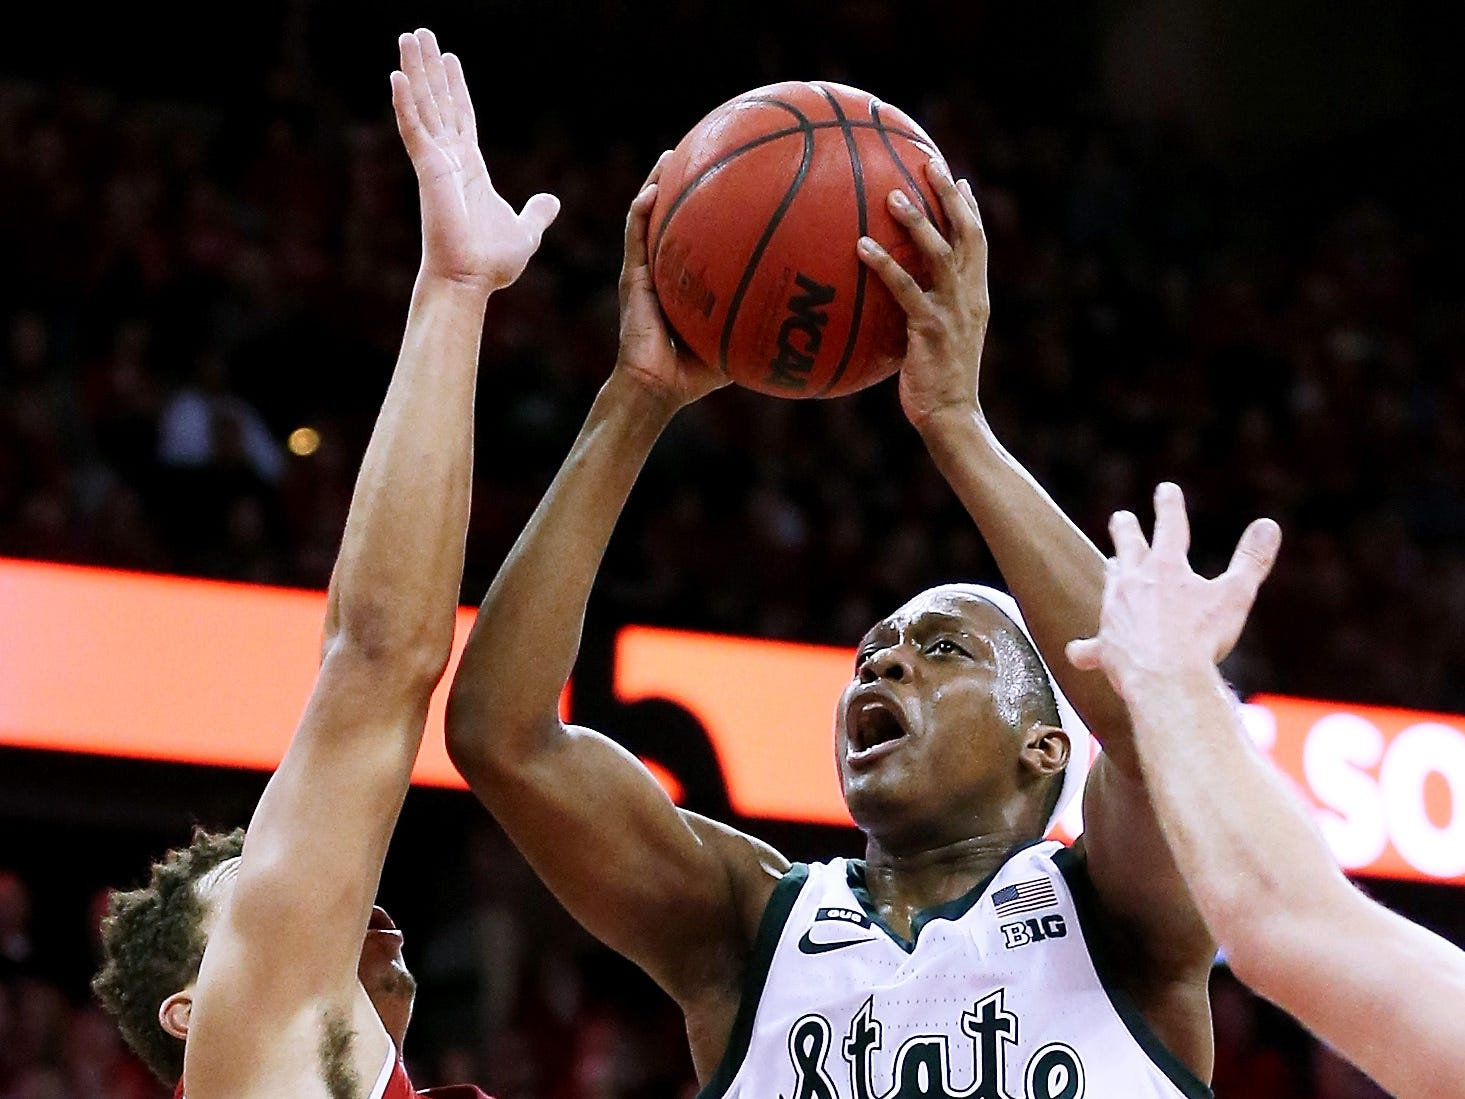 Michigan State's Cassius Winston (5)  attempts a shot while being guarded by Wisconsin's Kobe King (23) of the Wisconsin Badgers in the second half.